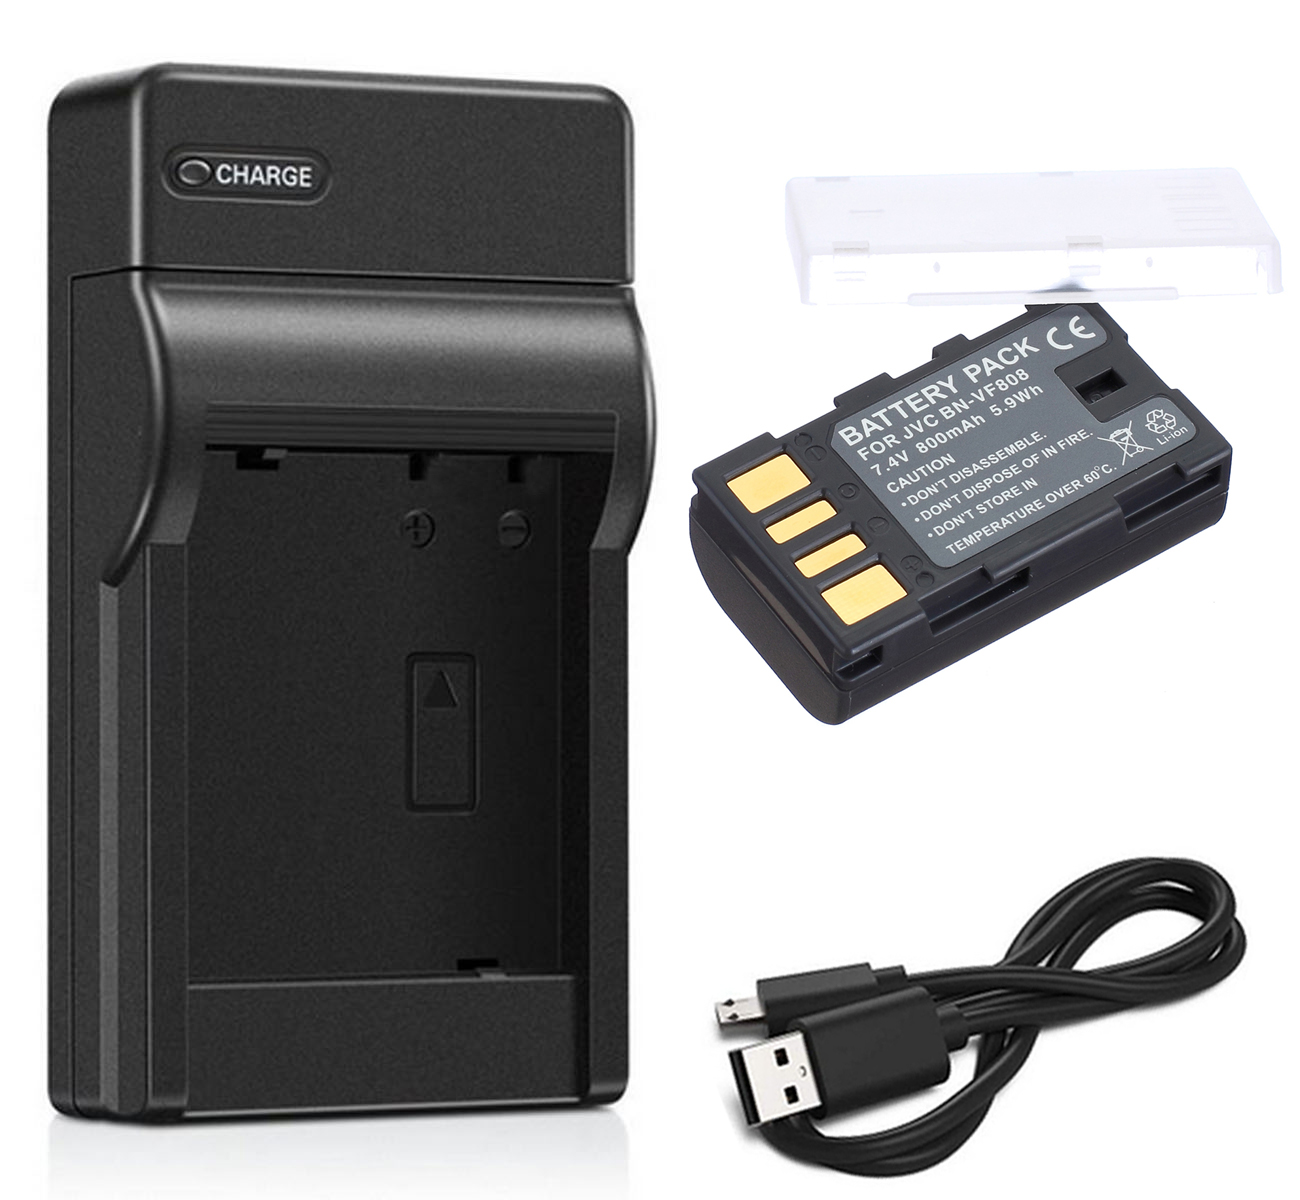 GZ-HM200BUS GZ-HM200AU Battery 2 Pack and LCD USB Battery Charger for JVC Everio GZ-HM200 GZ-HM200RU GZ-HM200BU GZ-HM200RUS Camcorder GZ-HM200AUS